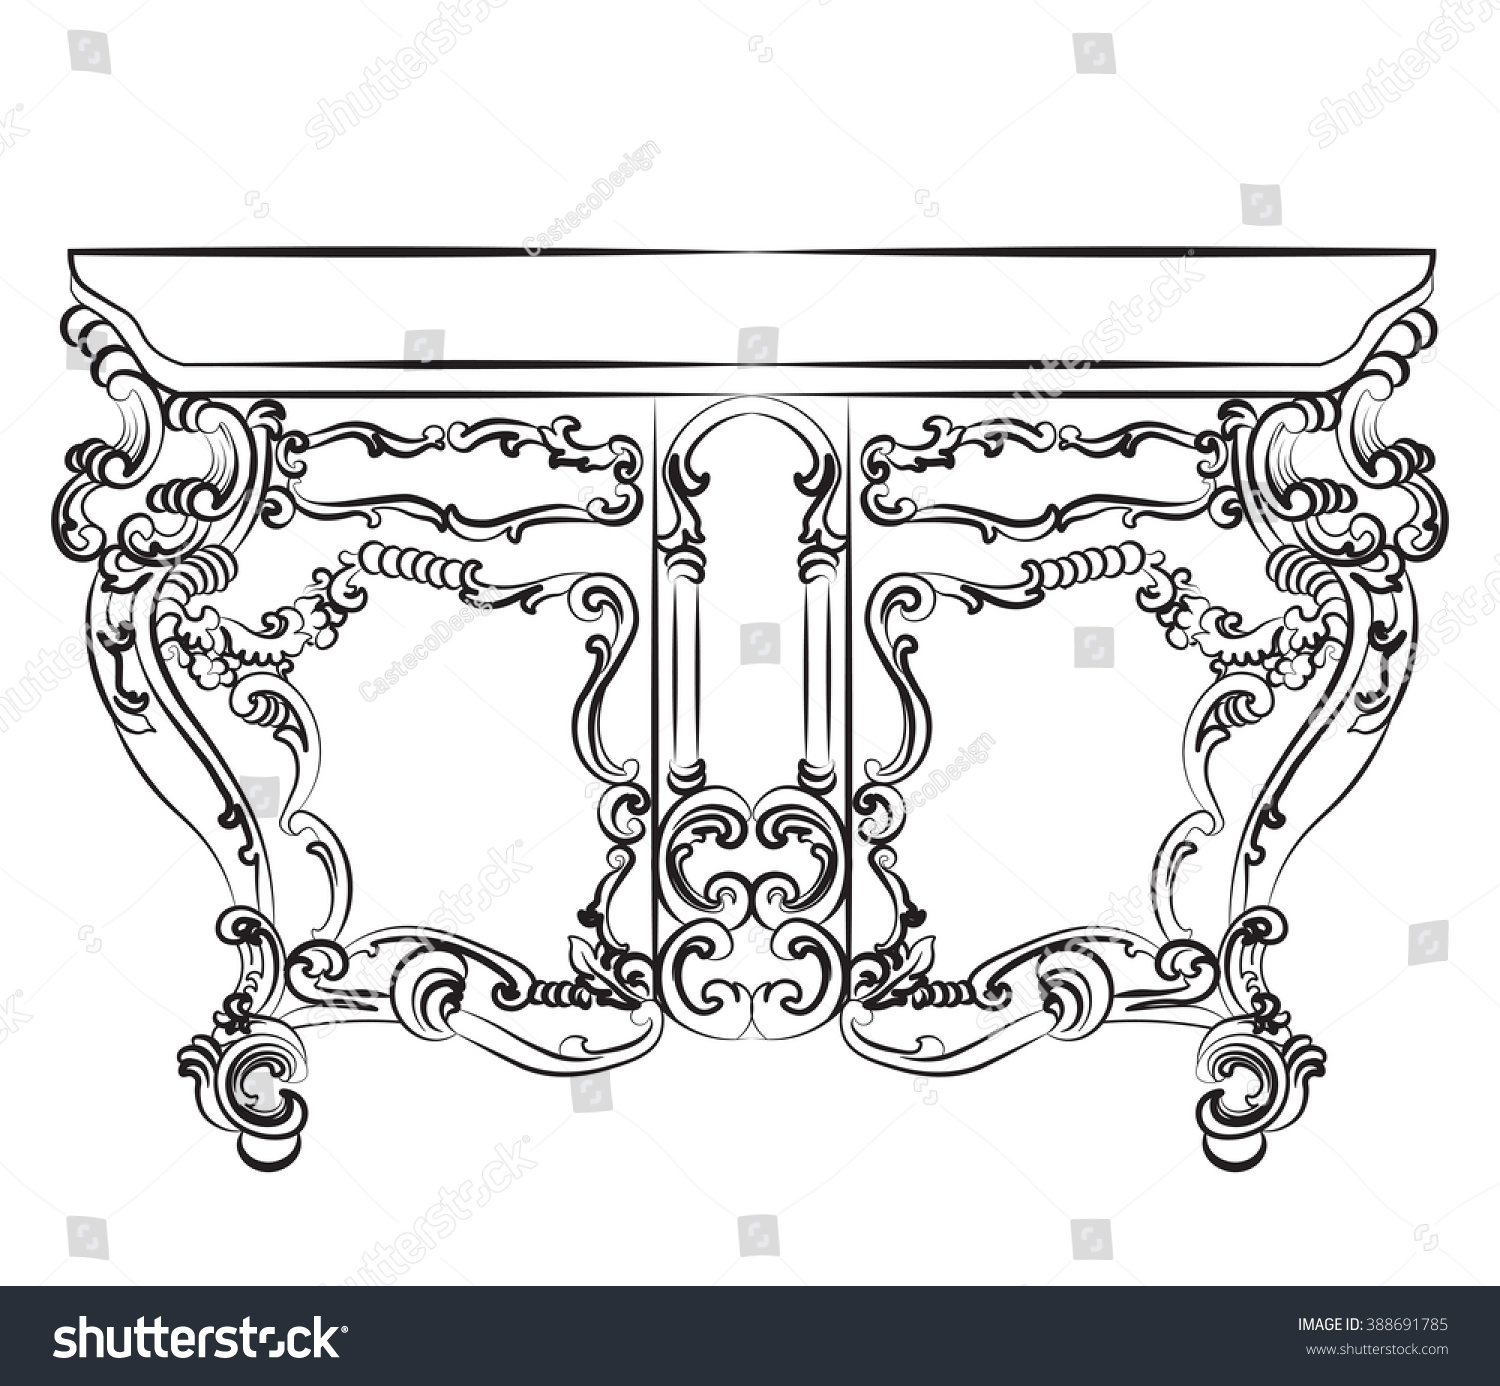 Rococo furniture sketch - Save To A Lightbox